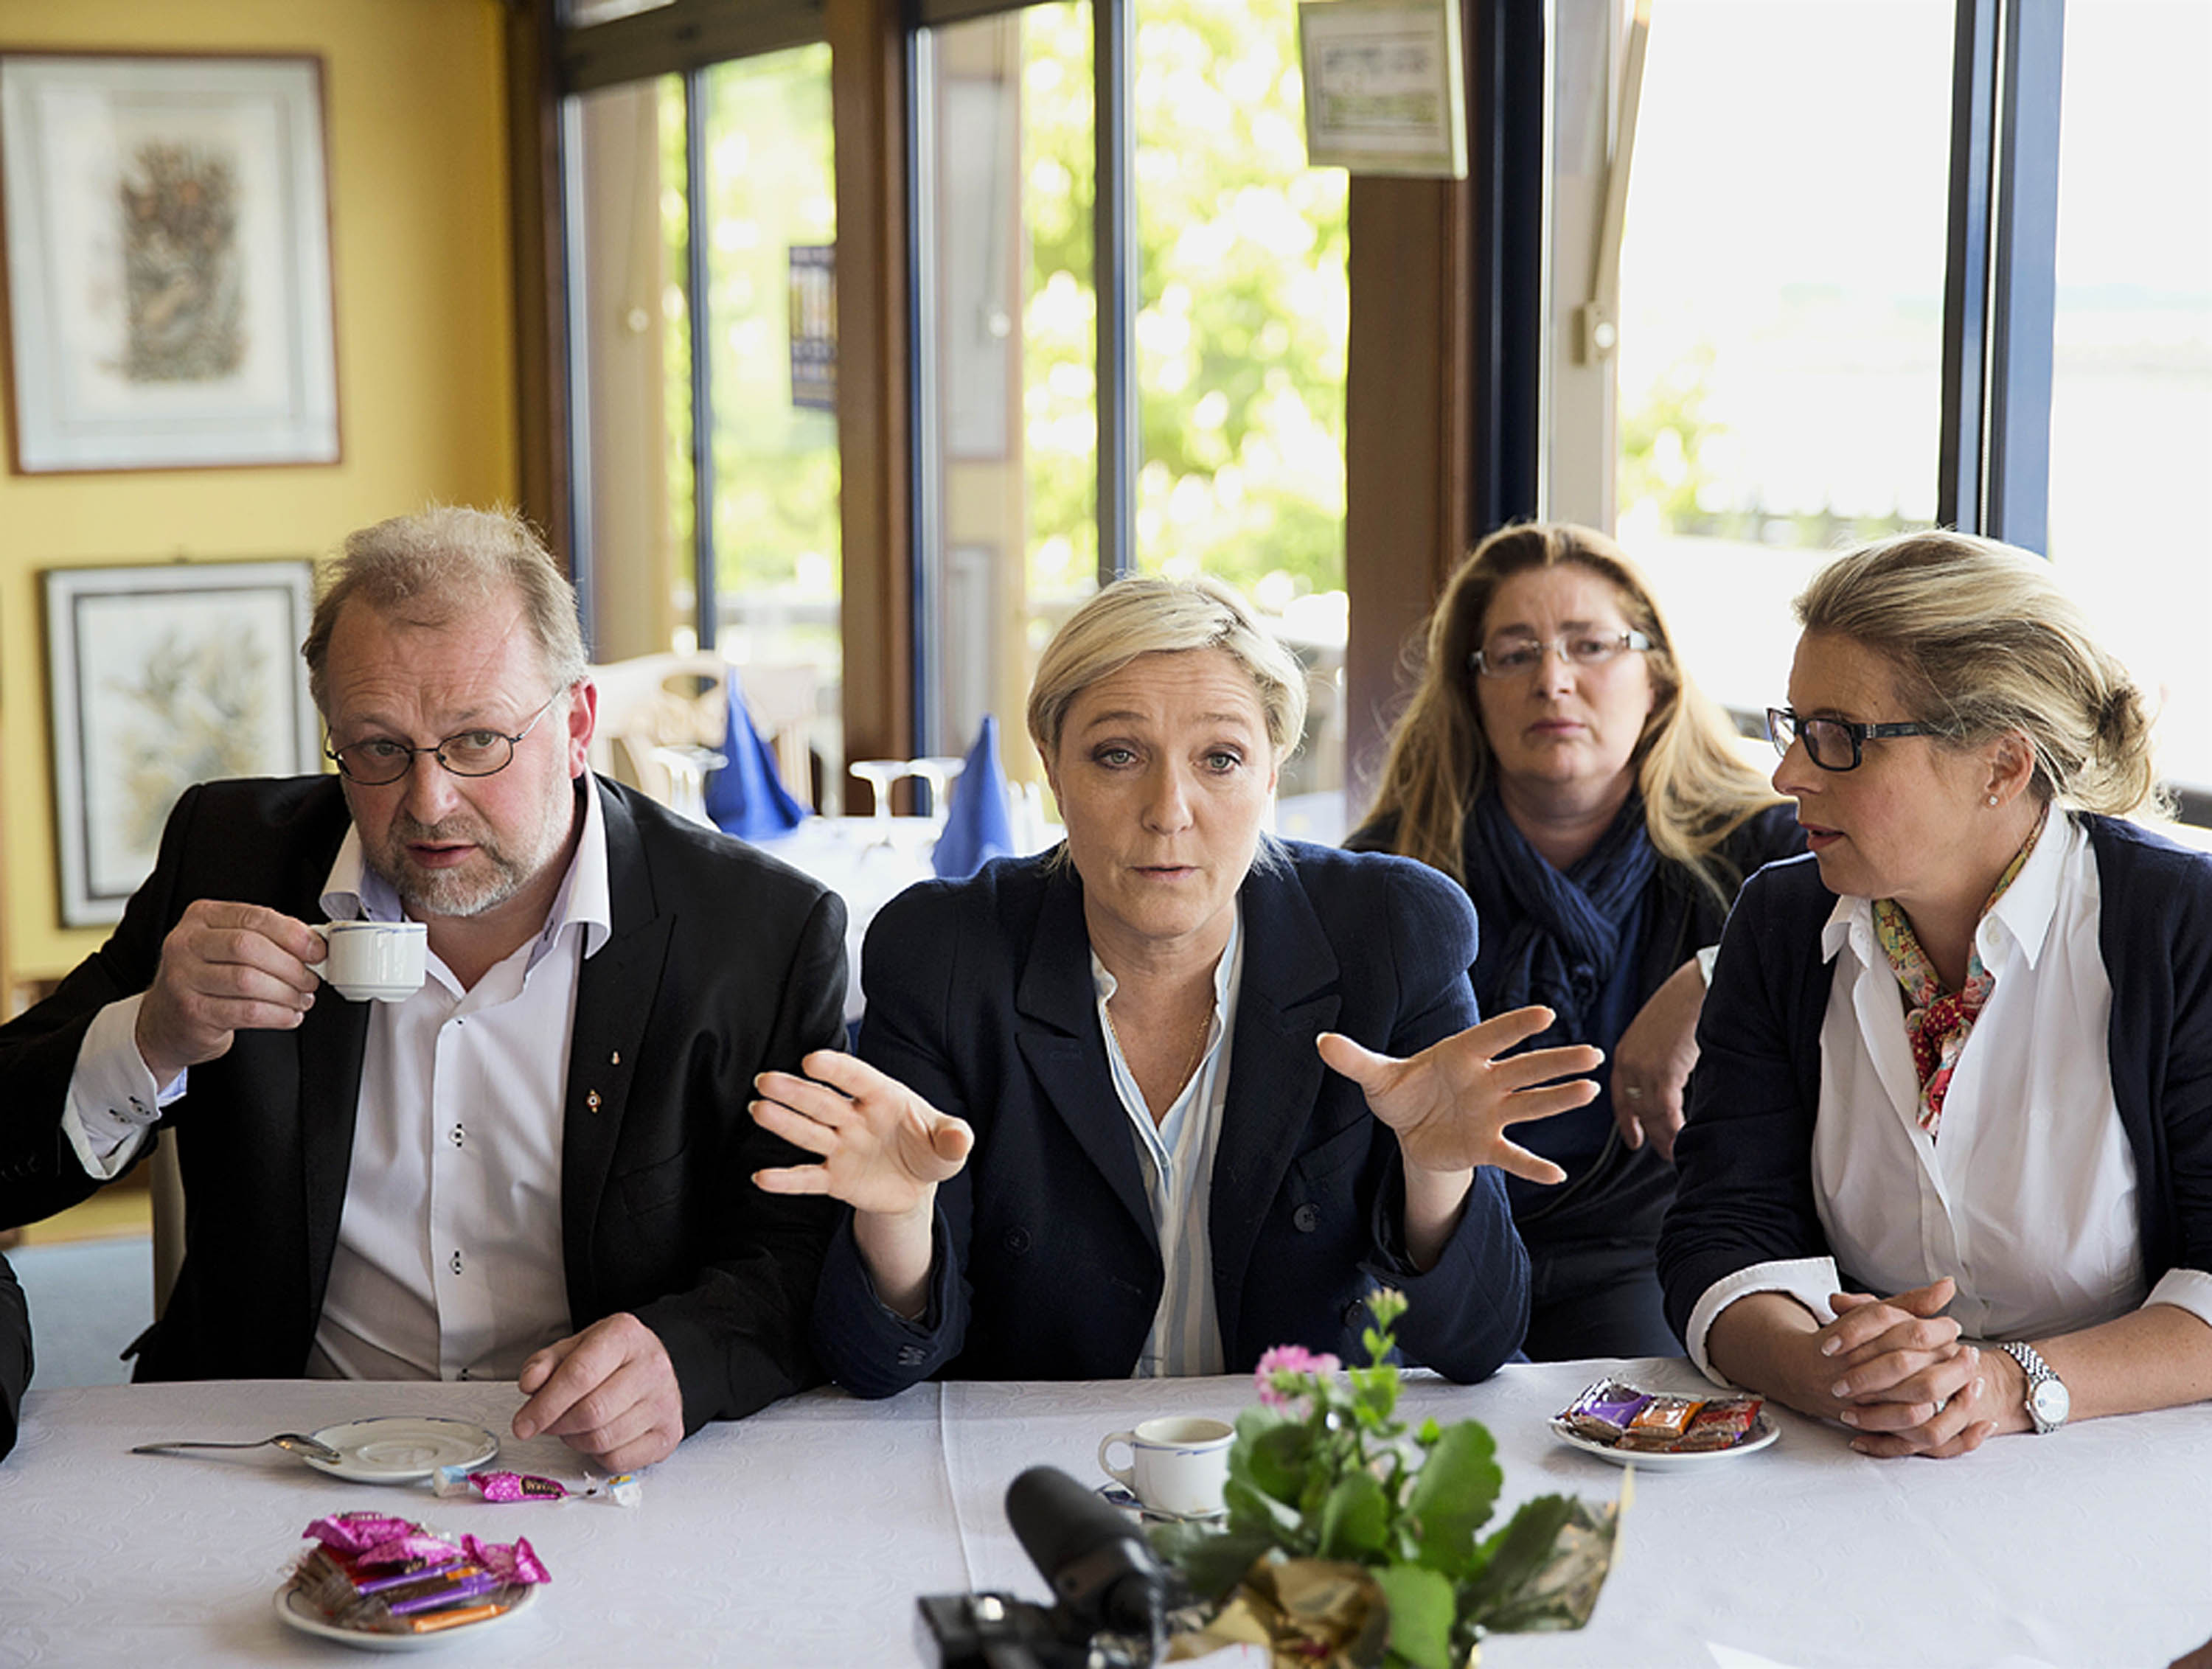 Euroskeptic France's far-right National Front party, headed by Marine Le Pen, second from left, was a big winner in the E.U. elections .